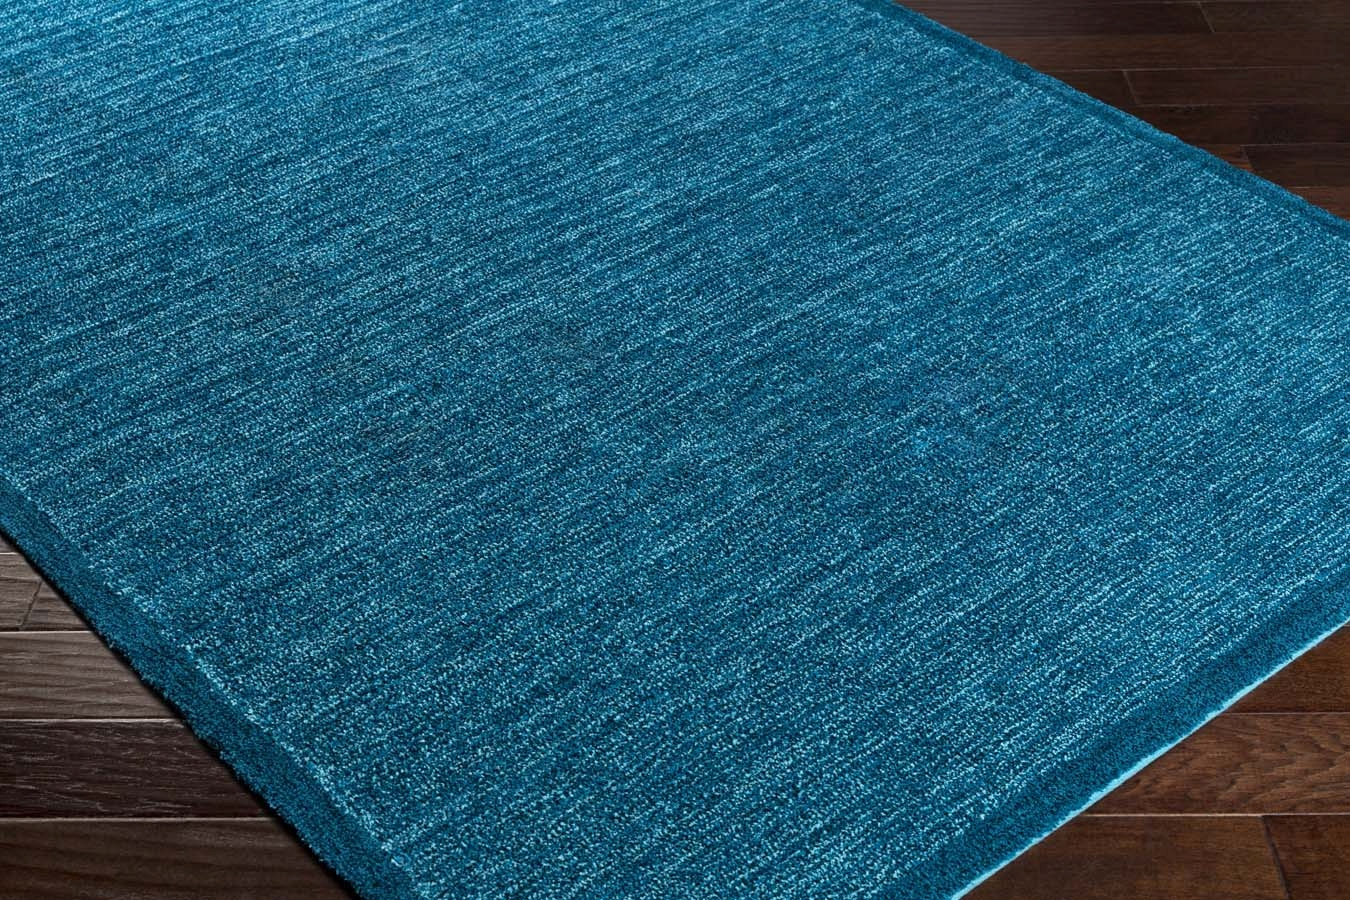 Solid Colored Area Rugs | Solid Color Rugs | Area Rugs for ... - photo#33